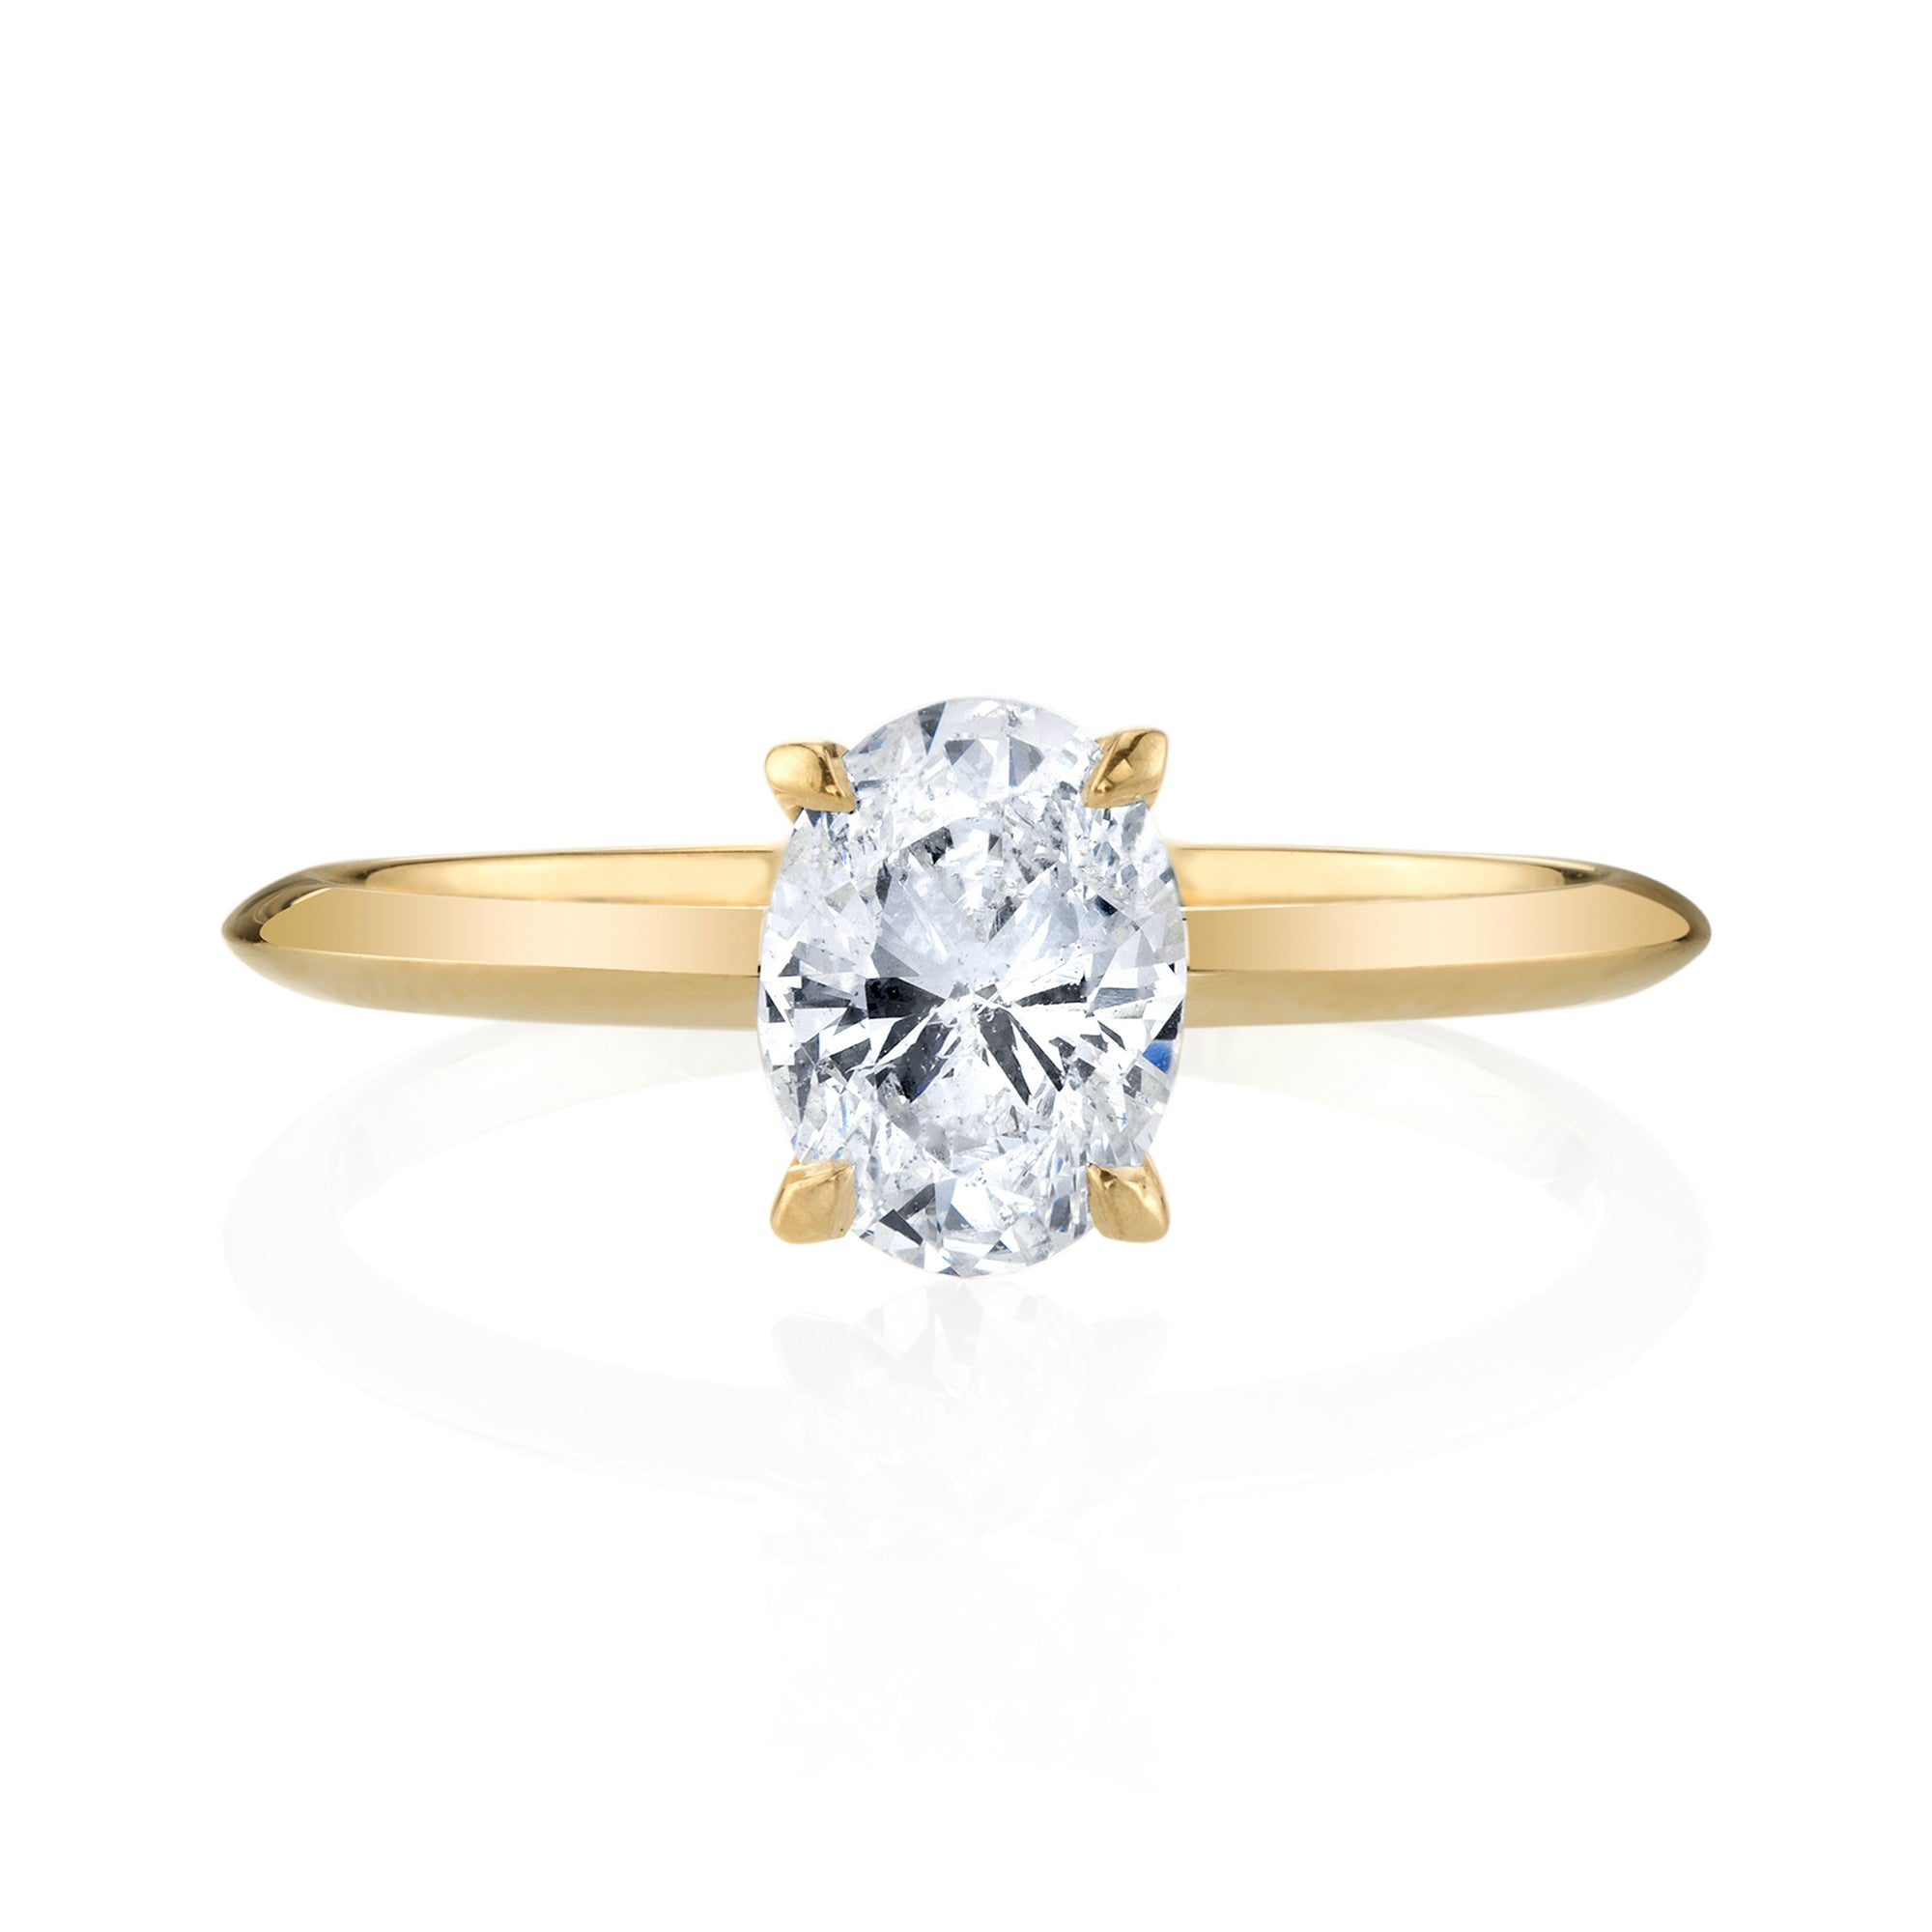 Custom 1 Carat White Diamond Oval Solitaire Ring